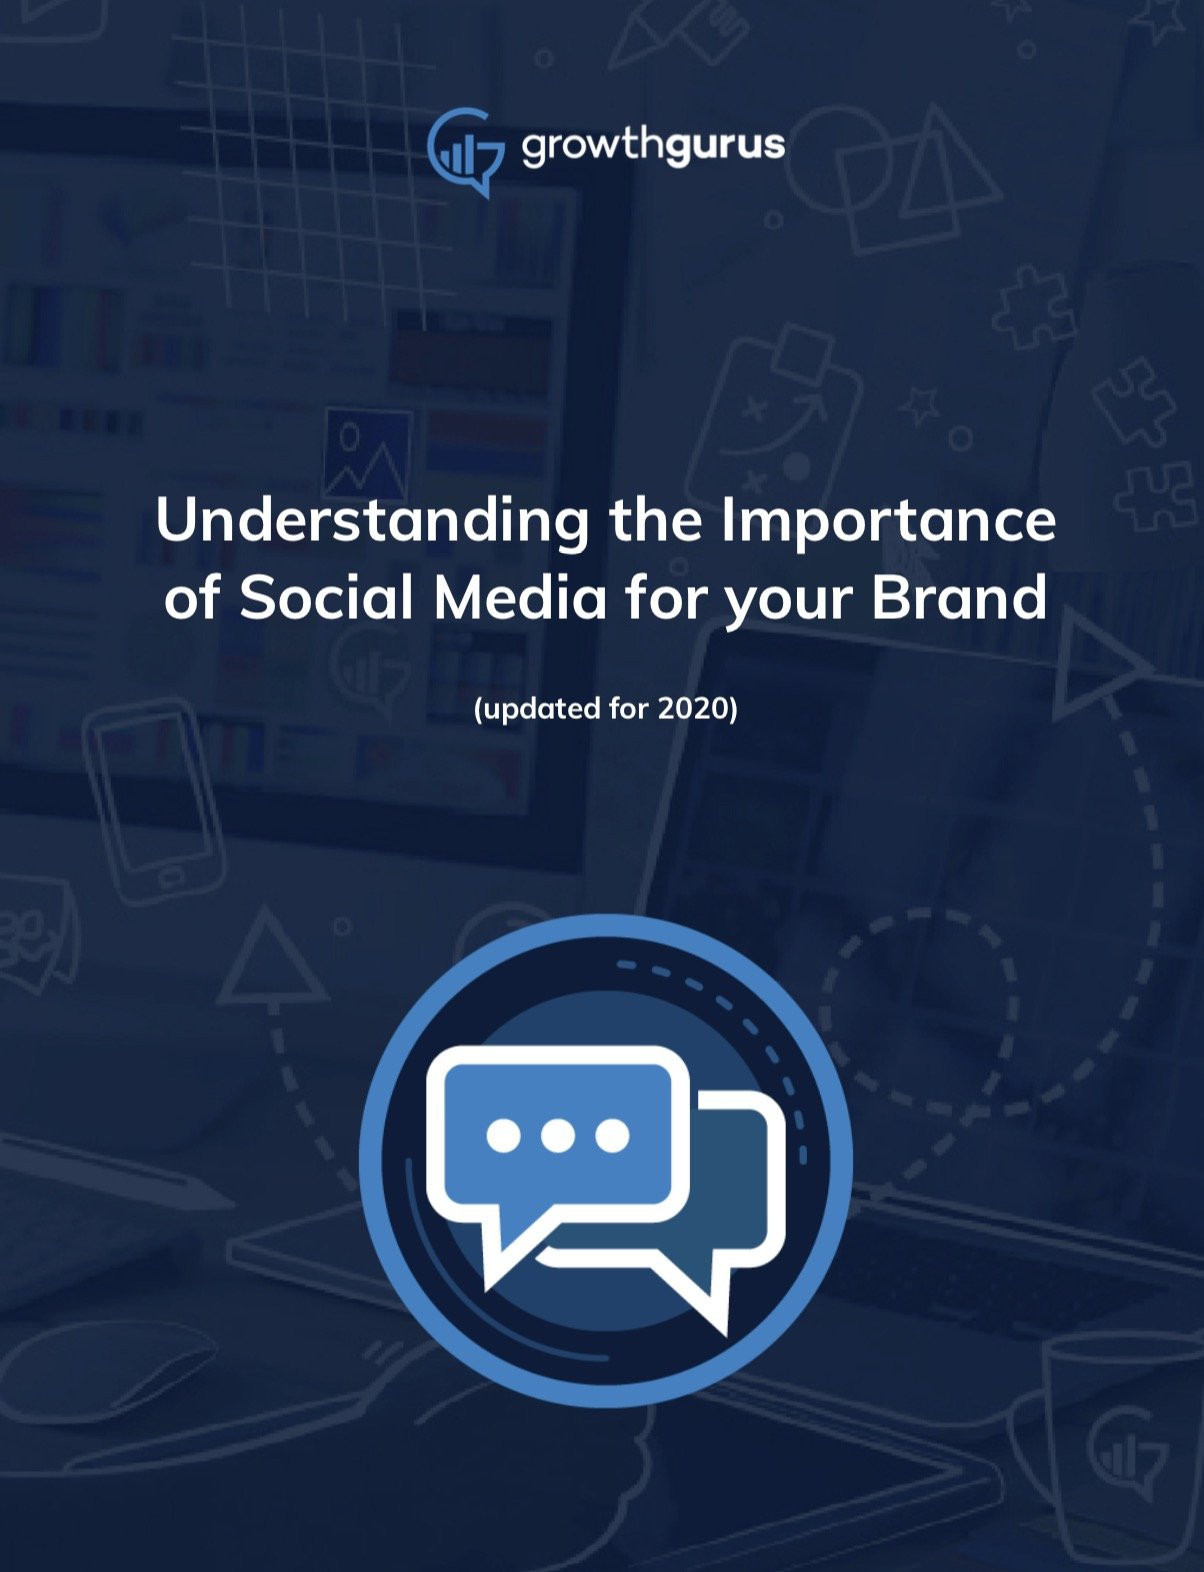 Understanding The Importance of Social Media for Your Brand - Whitepaper by Growth Gurus